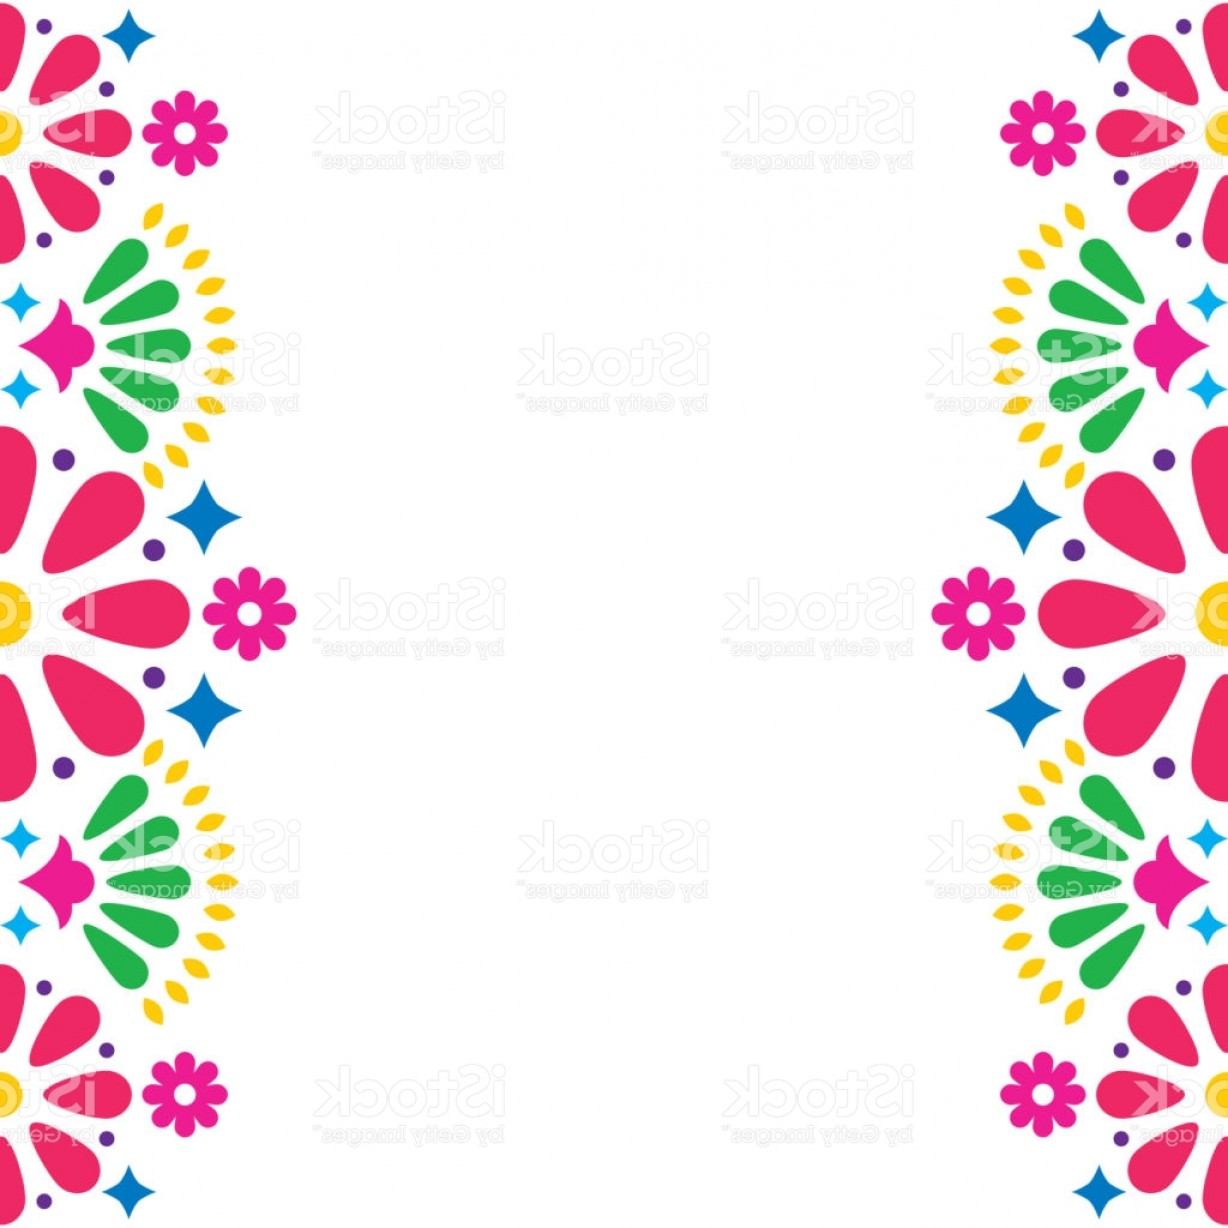 Birthday Card Vector Frame Designs: Mexican Folk Vector Wedding Or Party Invitation Greeting Card Colorful Frame Design Gm